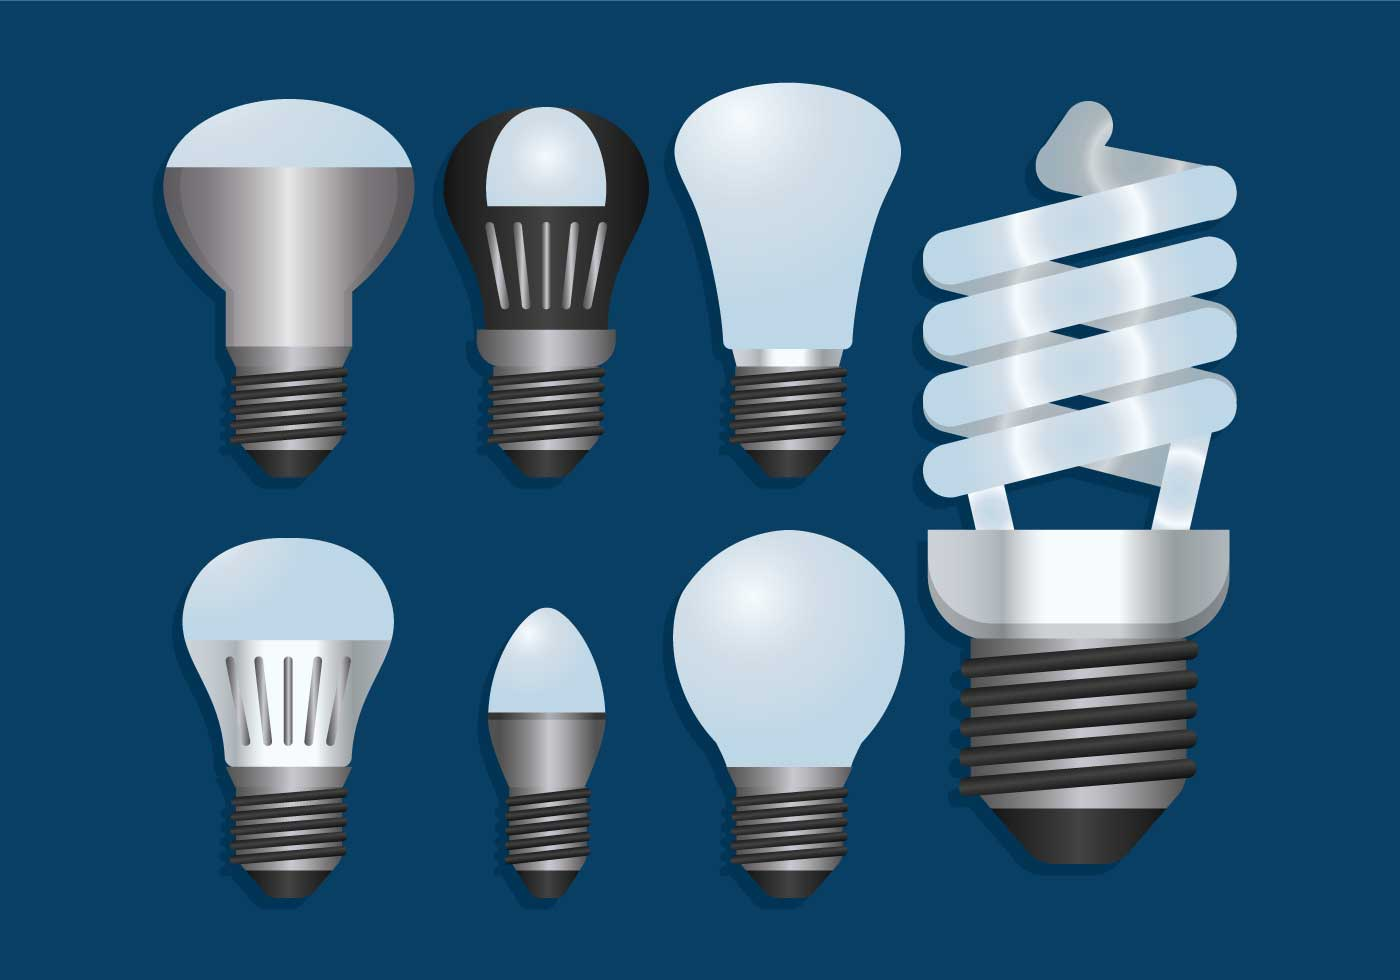 Led Lights Vector Set Download Free Vector Art Stock